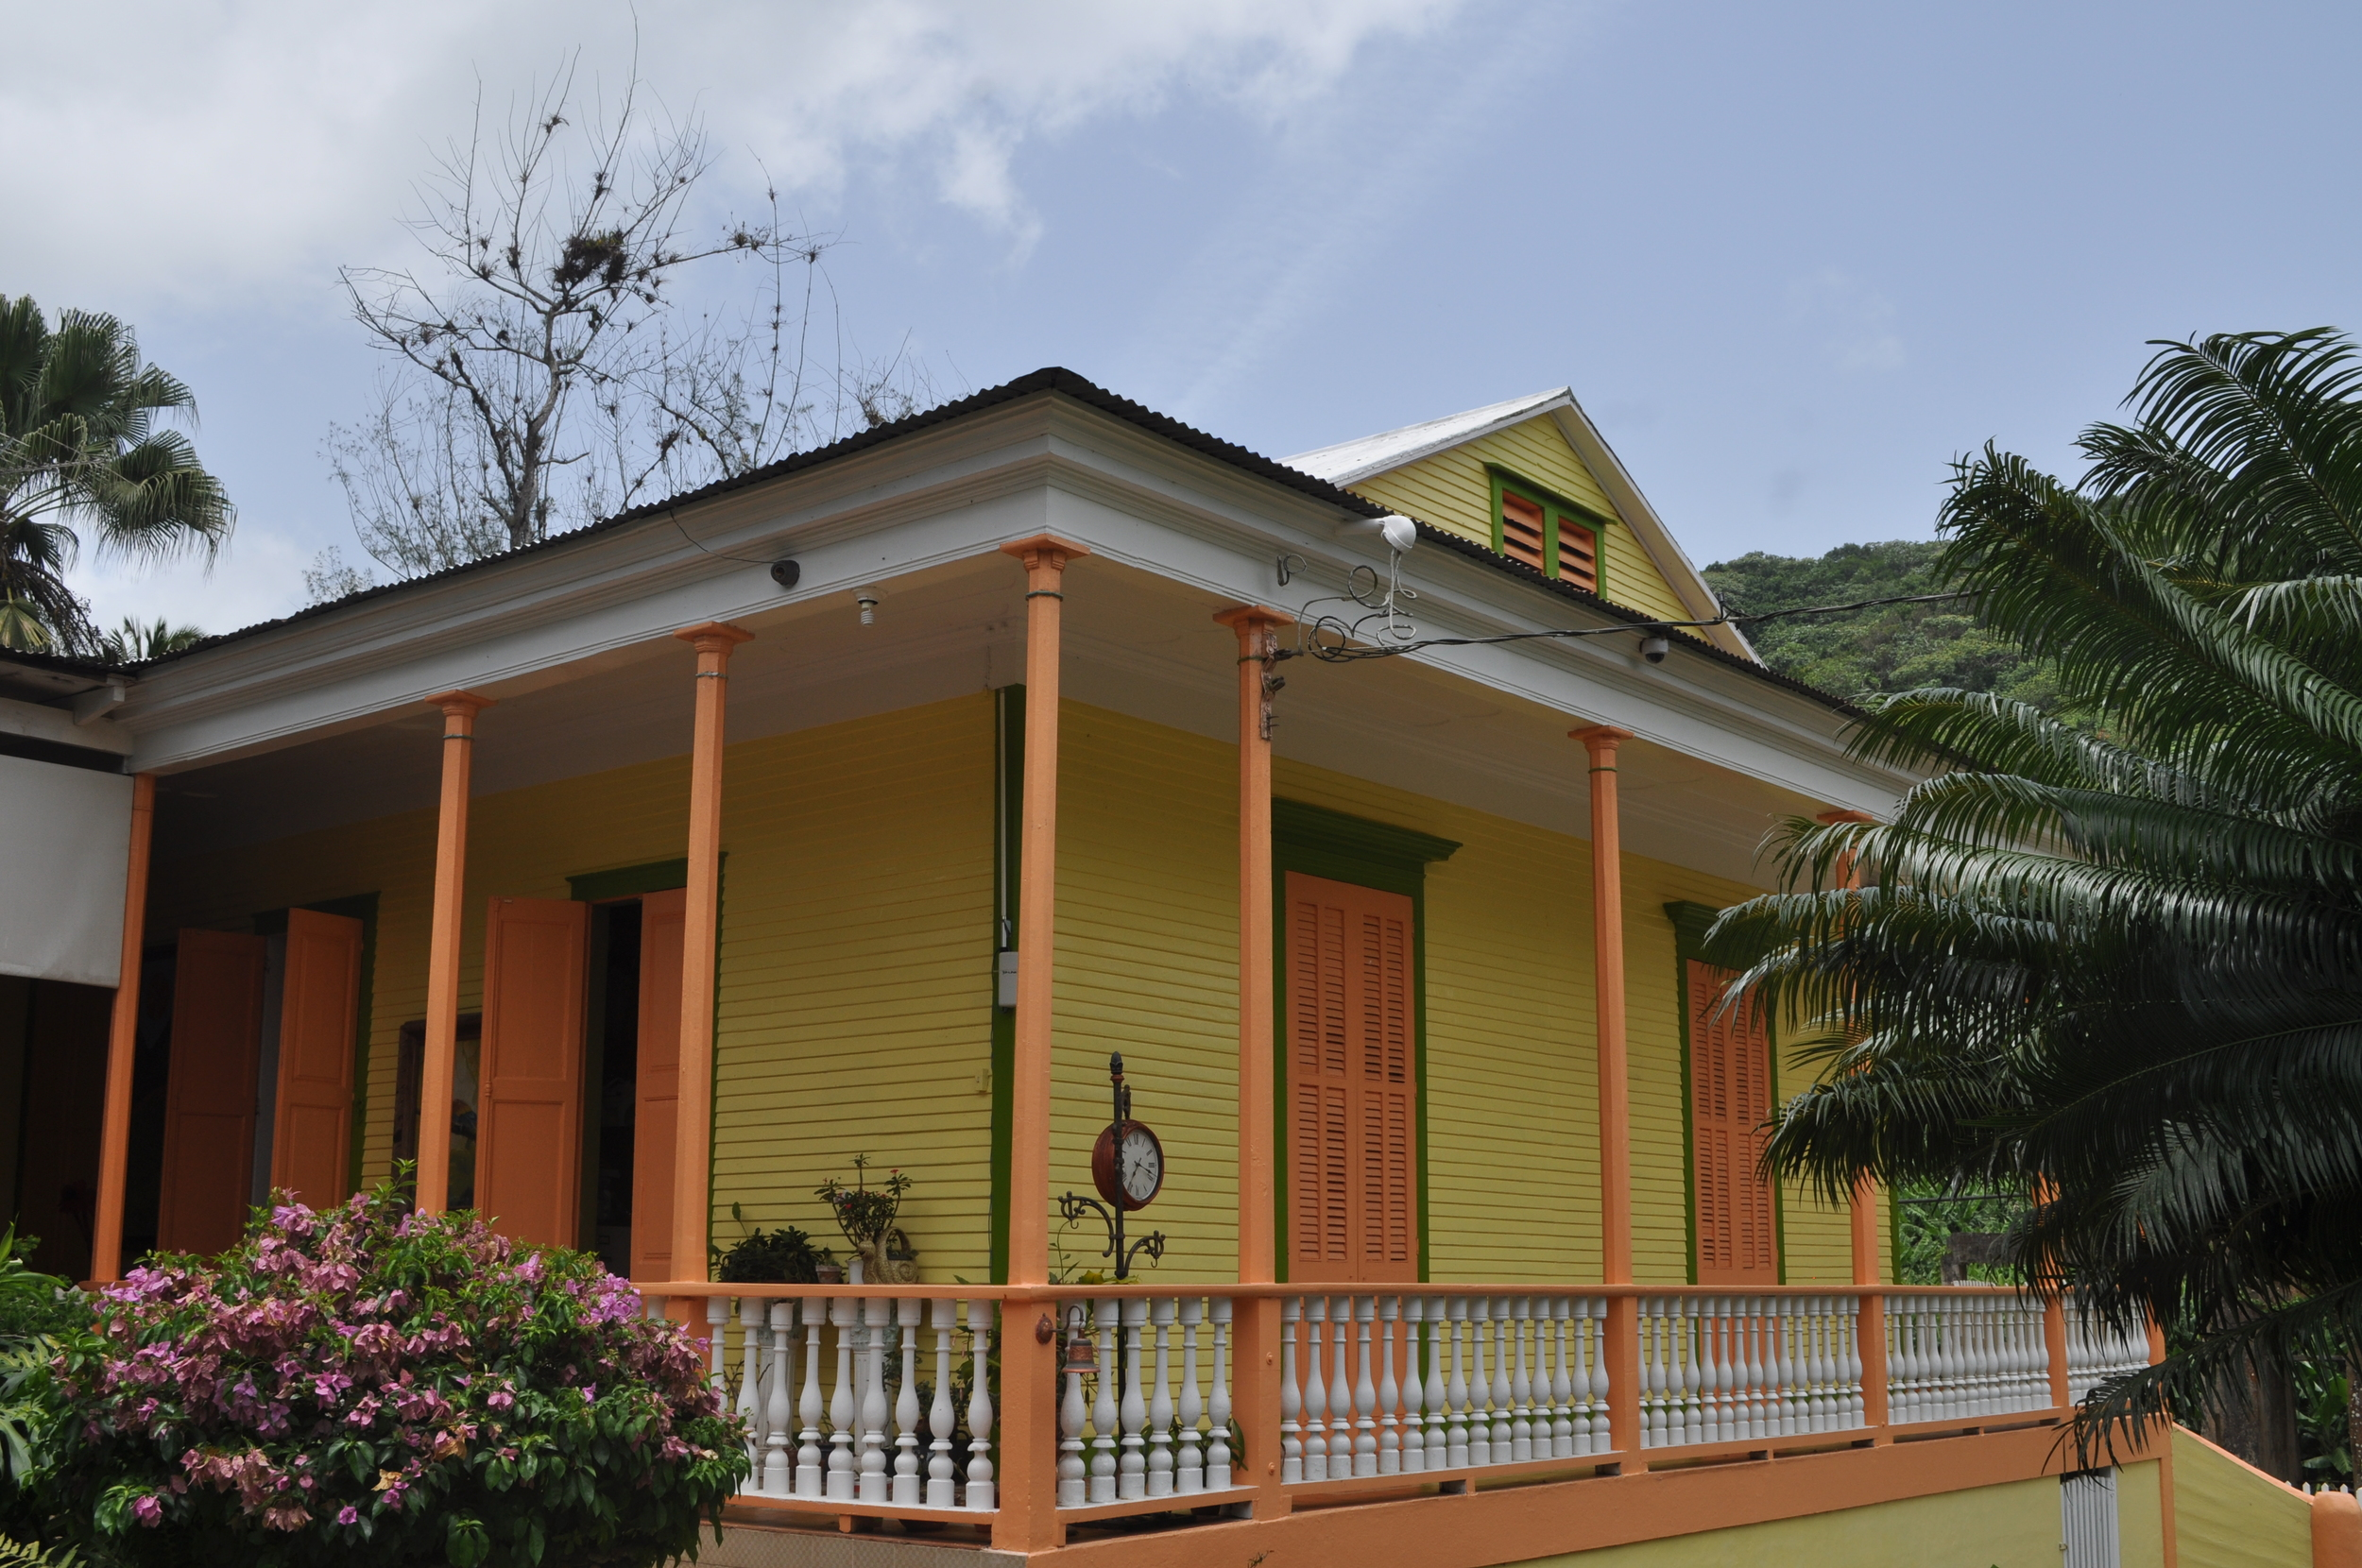 Hacienda Luz de Luna is located in the Yahuecas neighborhood in Adjuntas. Photo: Pamy Rojas